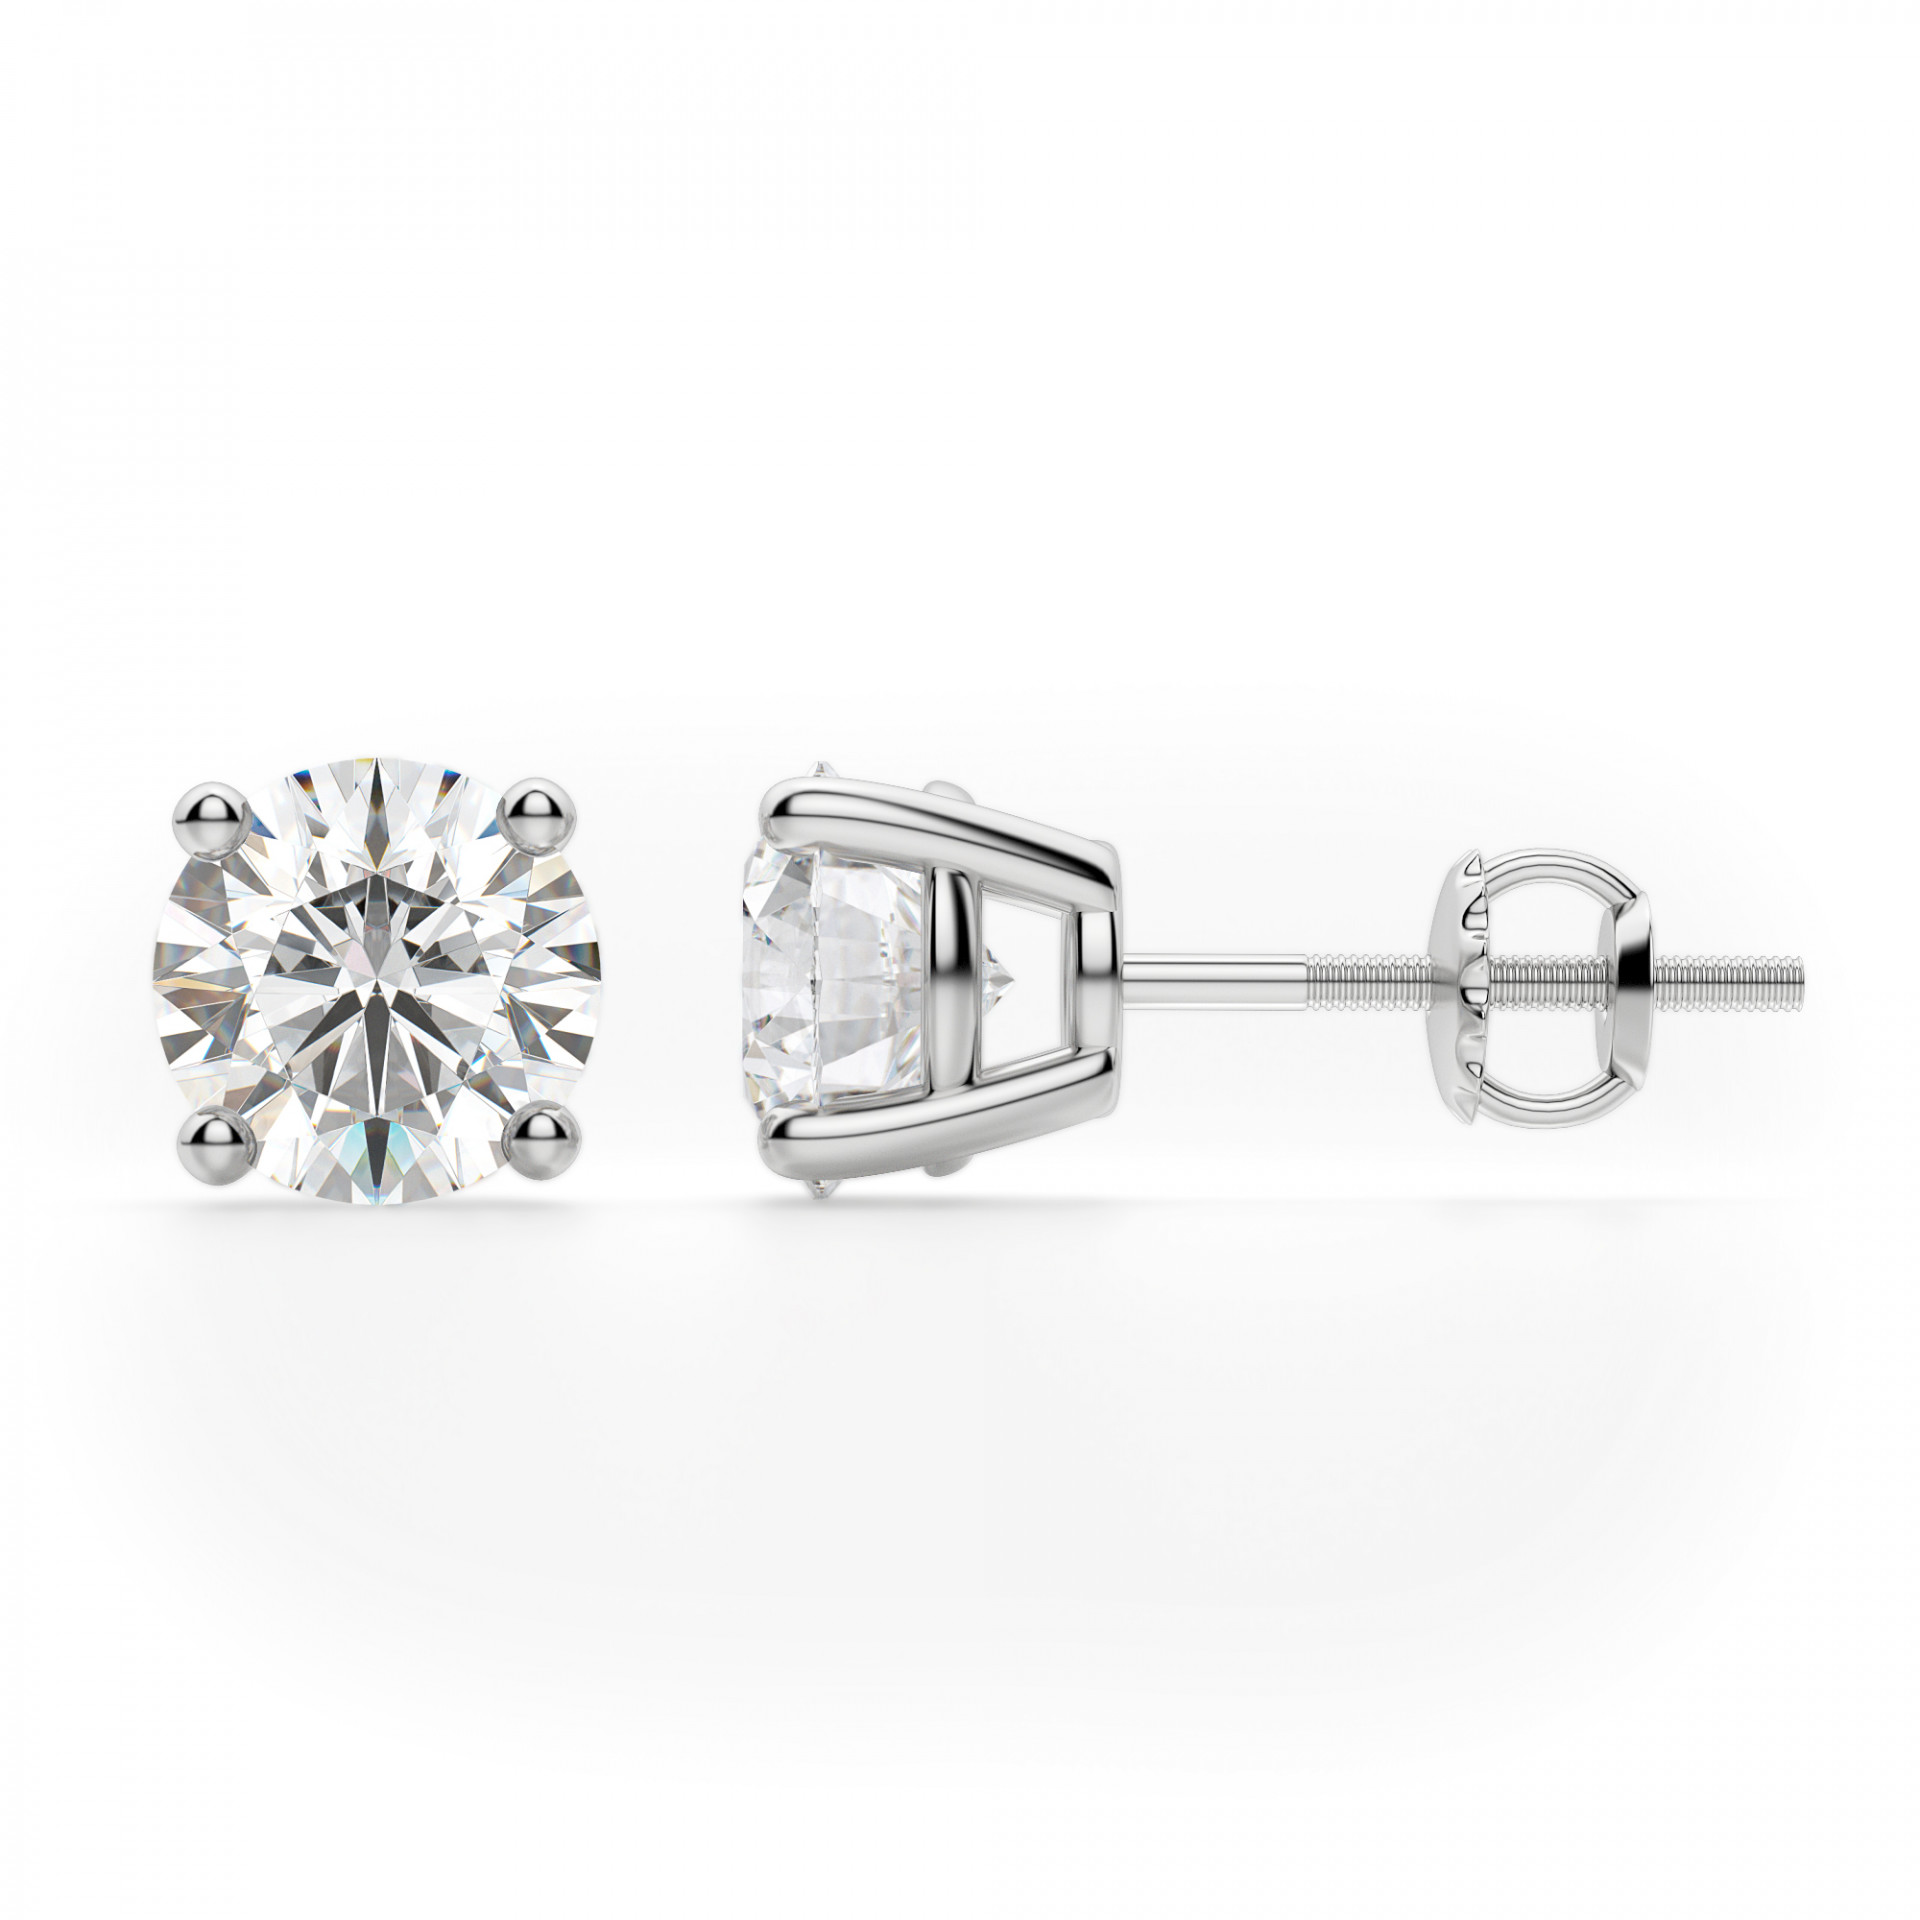 ef1f74513 Earrings | Classic/Stud | Round Cut Stud Earrings, Screw Back ...